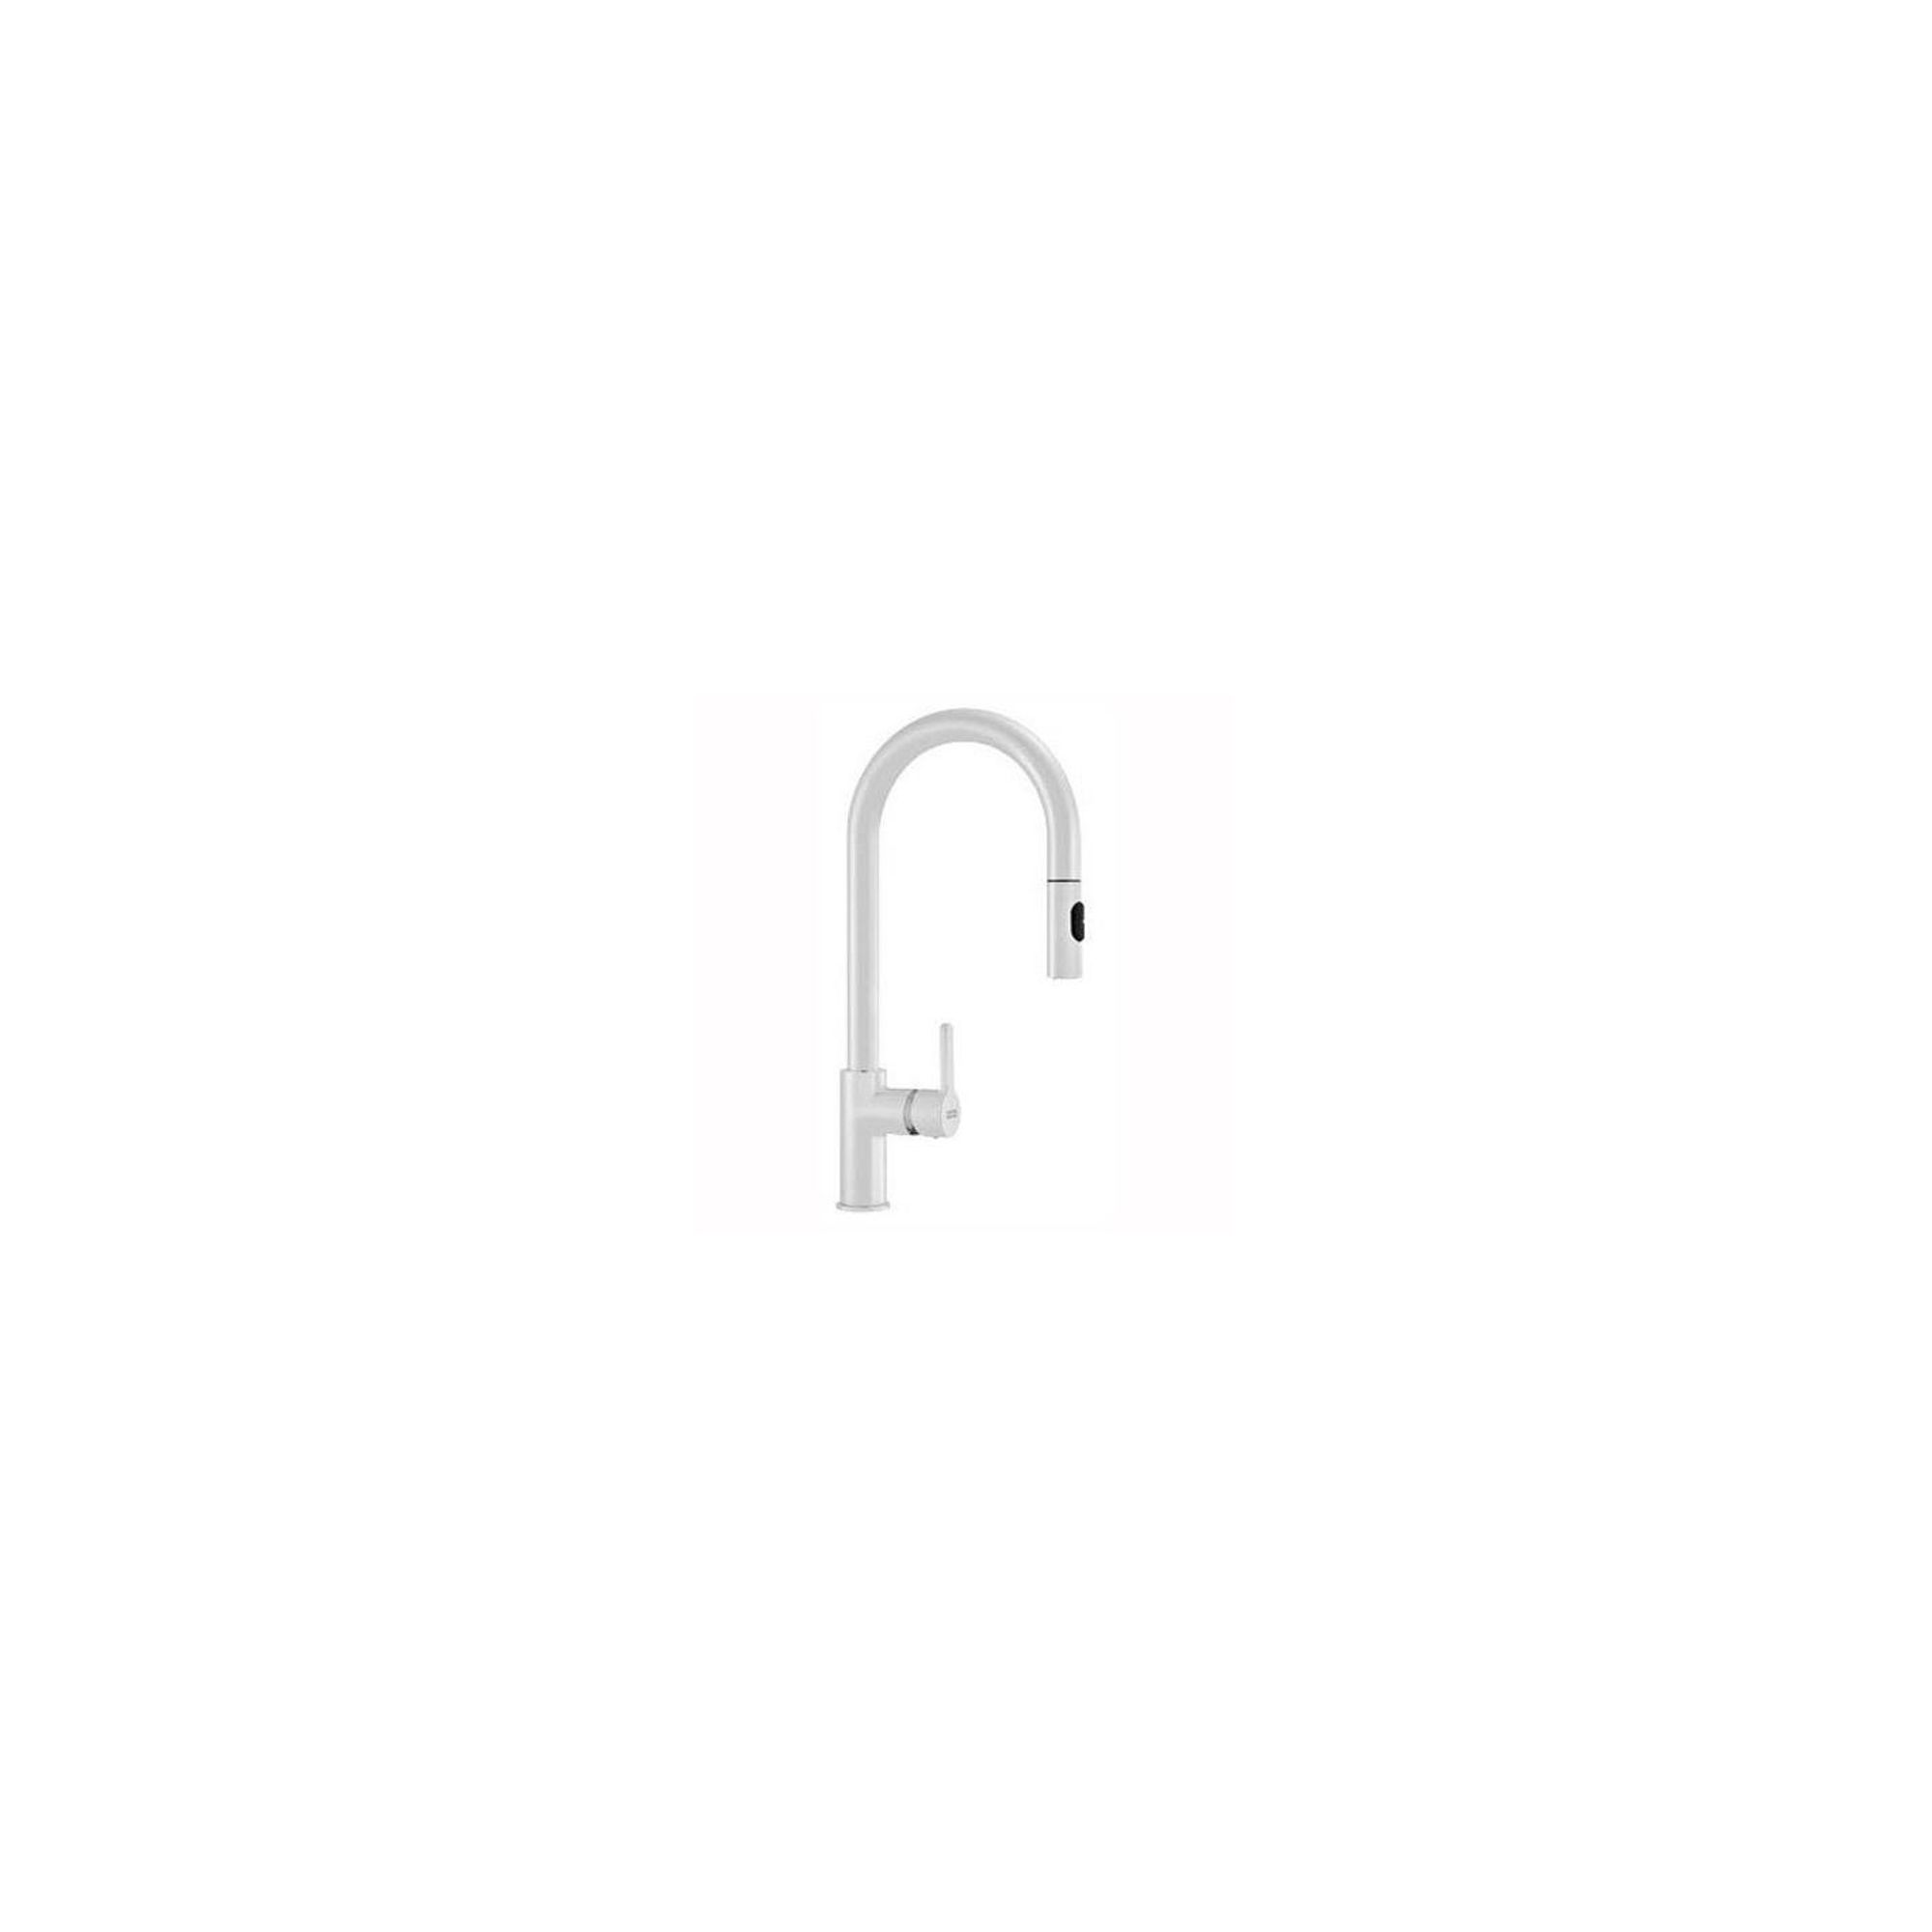 Franke Arena Single Lever Pull-Out Spray Kitchen Sink Mixer Tap, Matte White at Tesco Direct